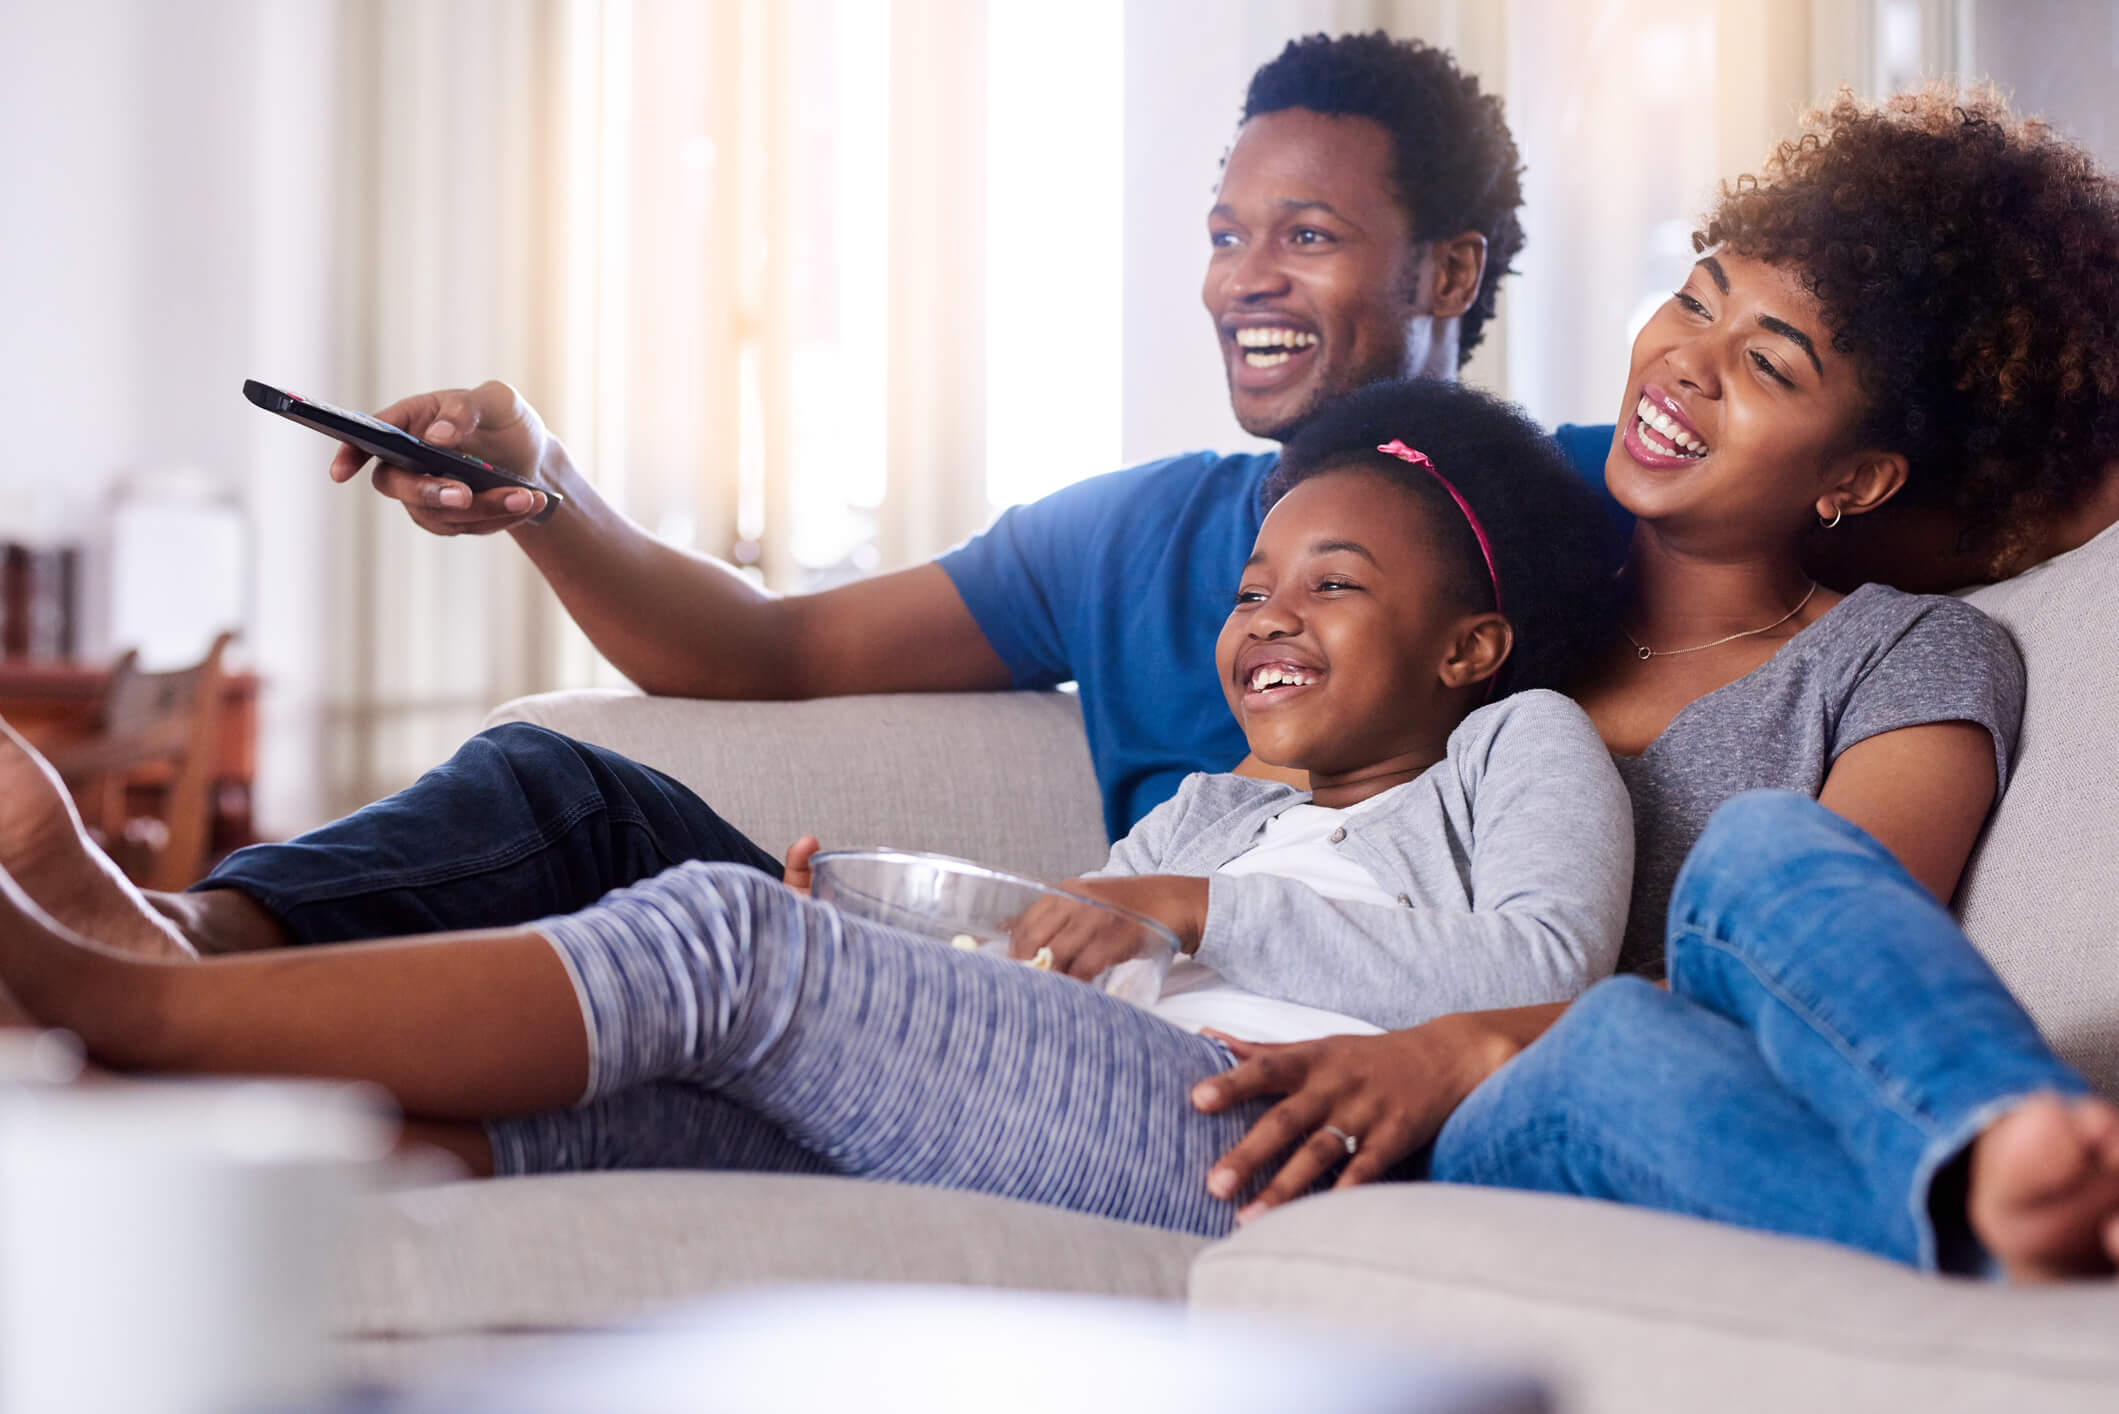 Dad, mom, and daughter cuddling on couch together watching TV in living room